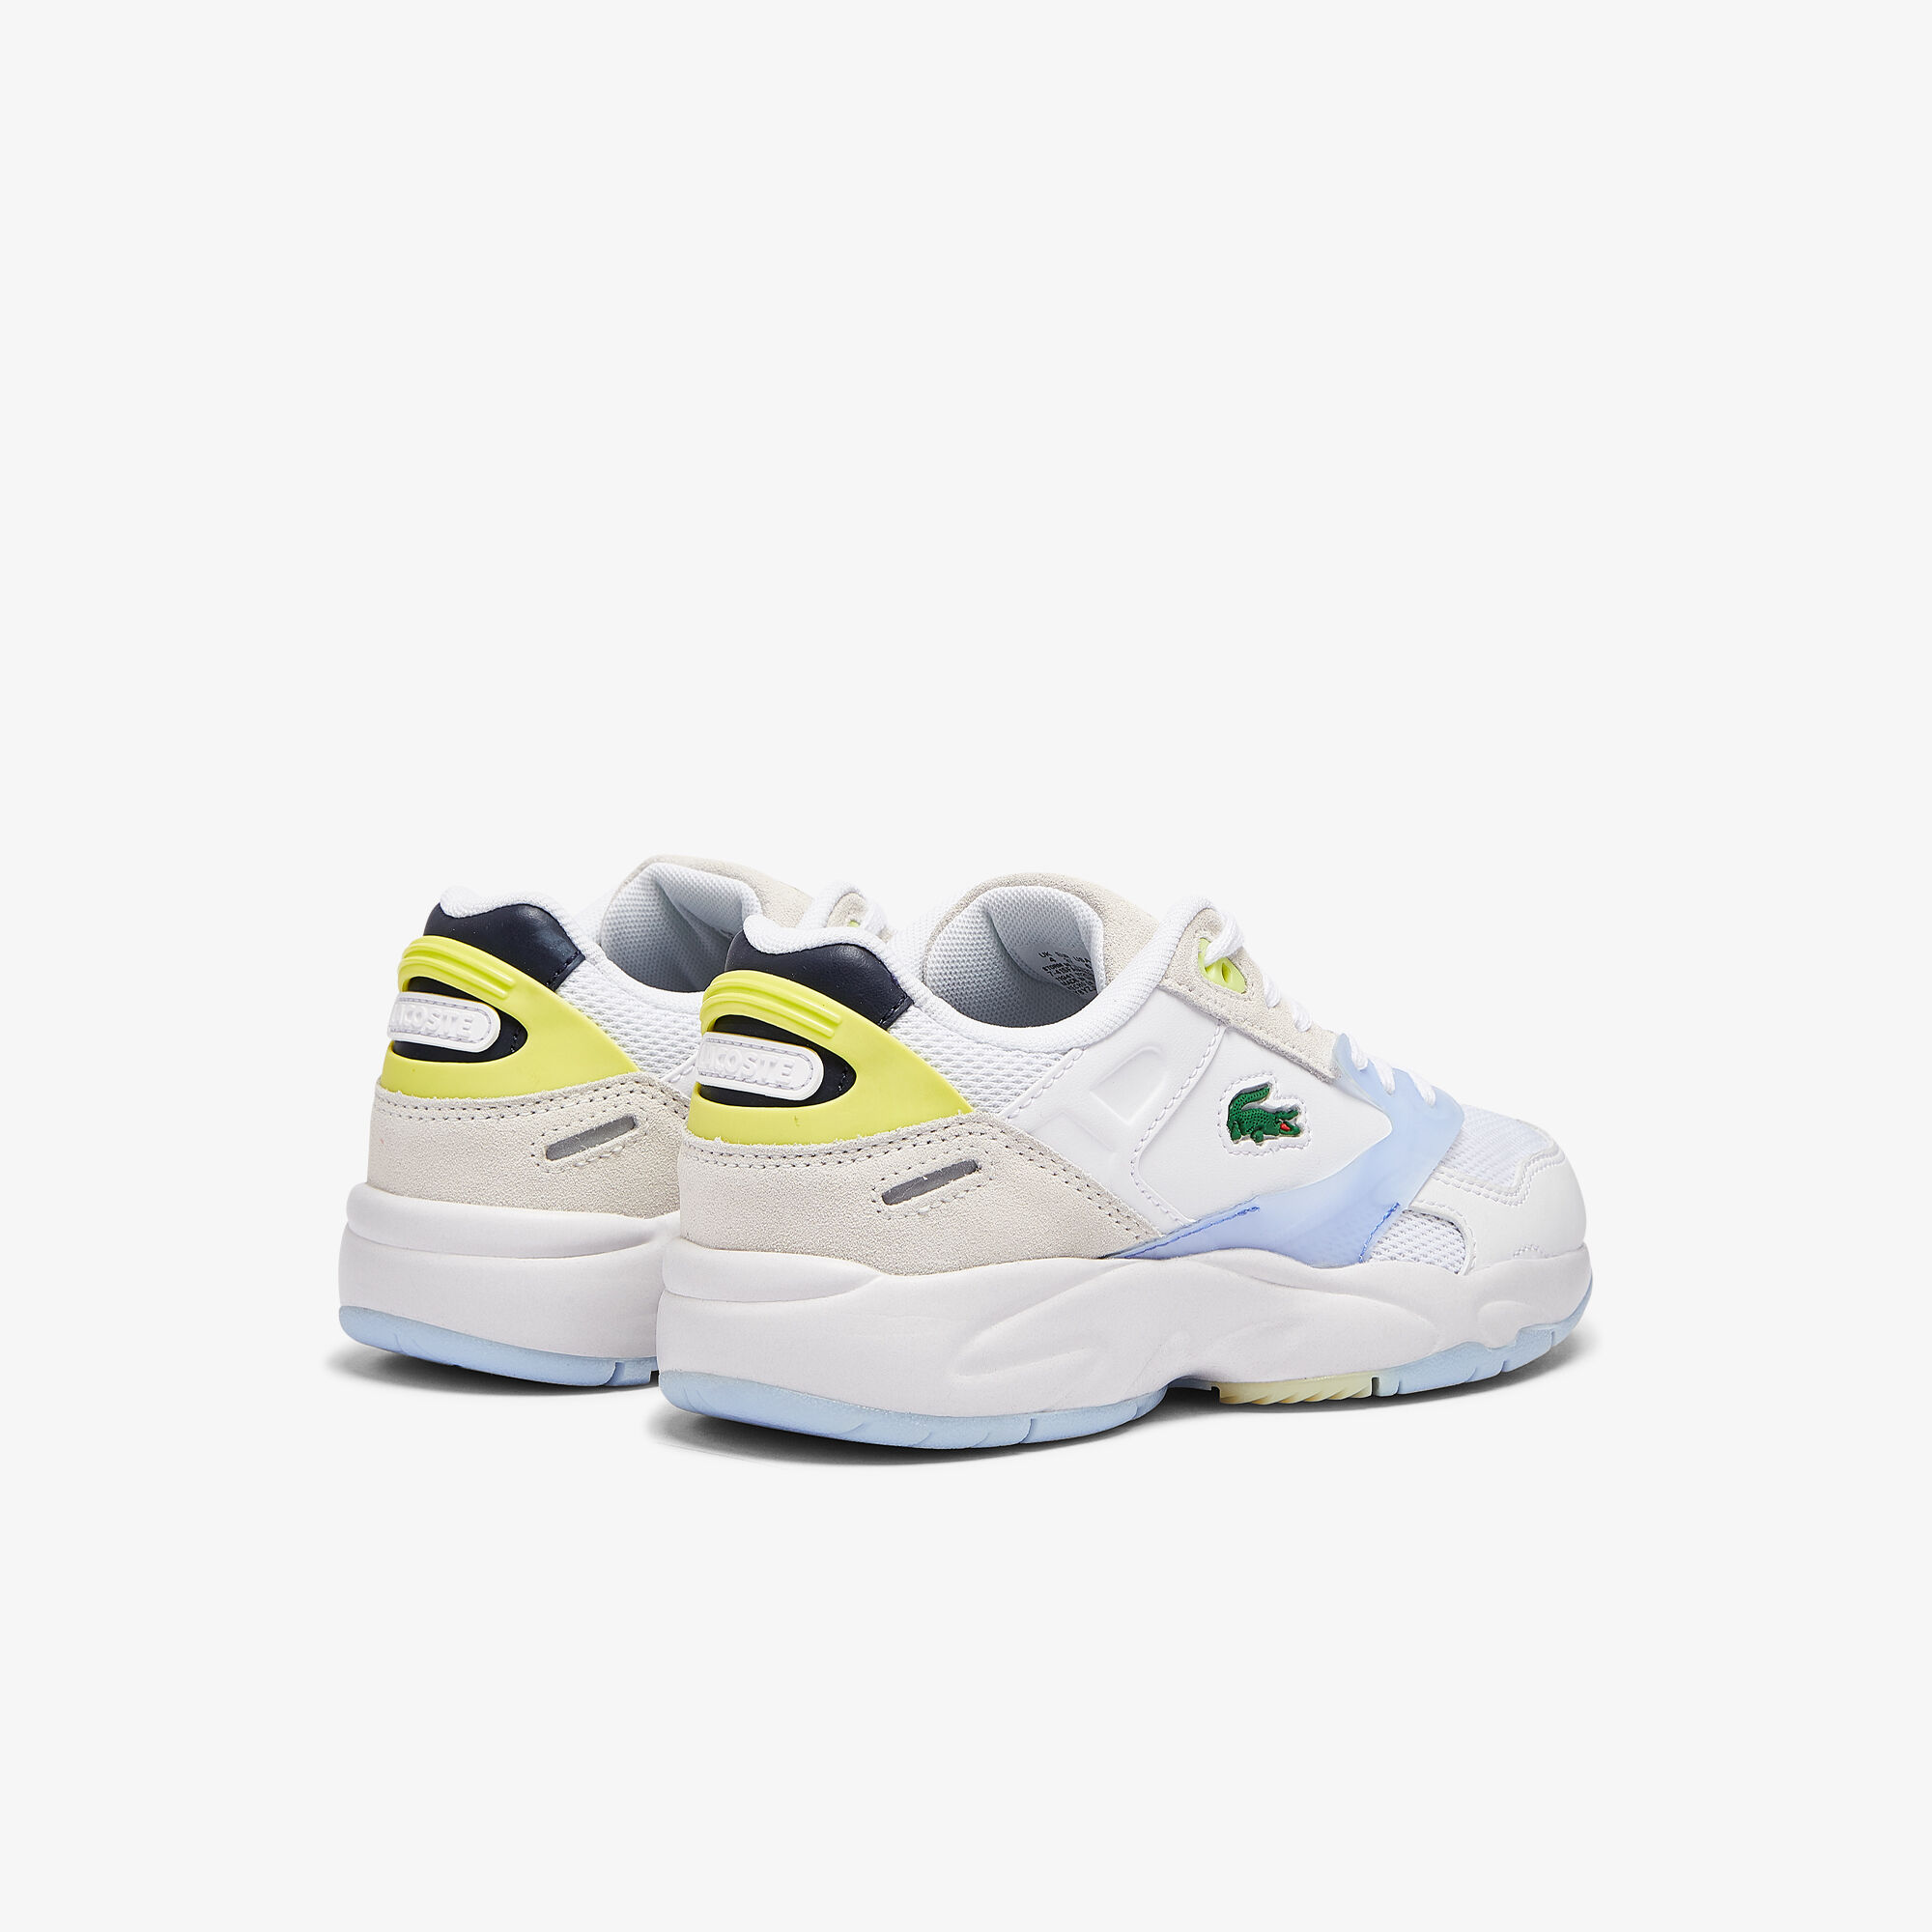 Women's Storm 96 Lo Textile and Leather Trainers